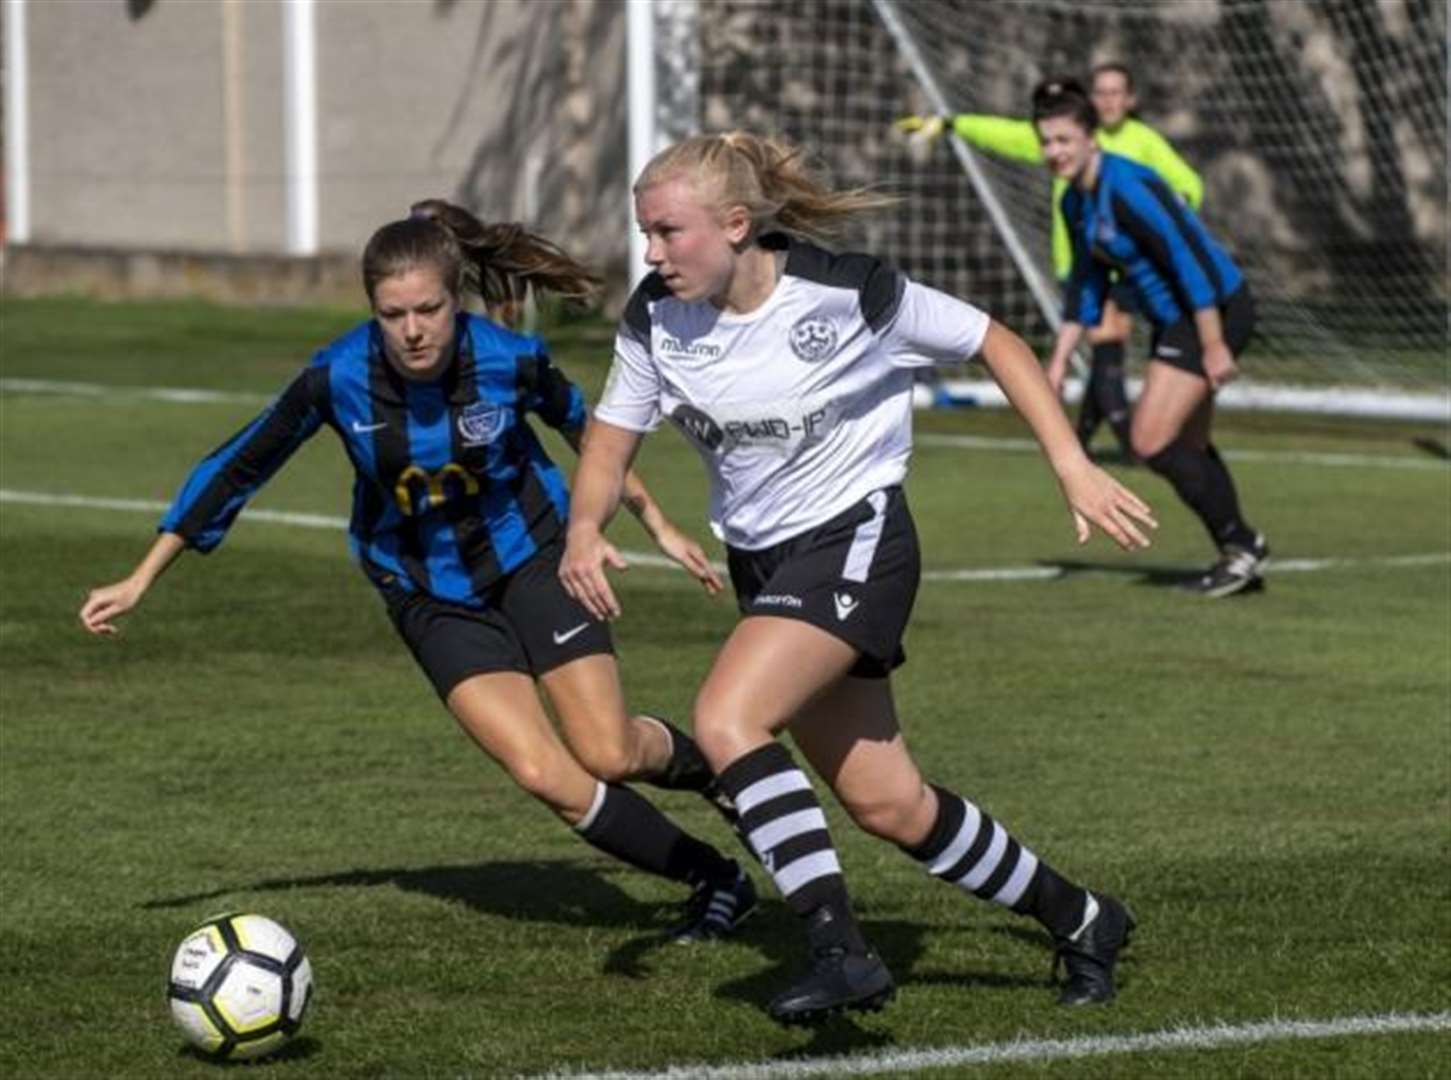 Flying winger Charlotte Gillies in top form for Cambridge City Ladies